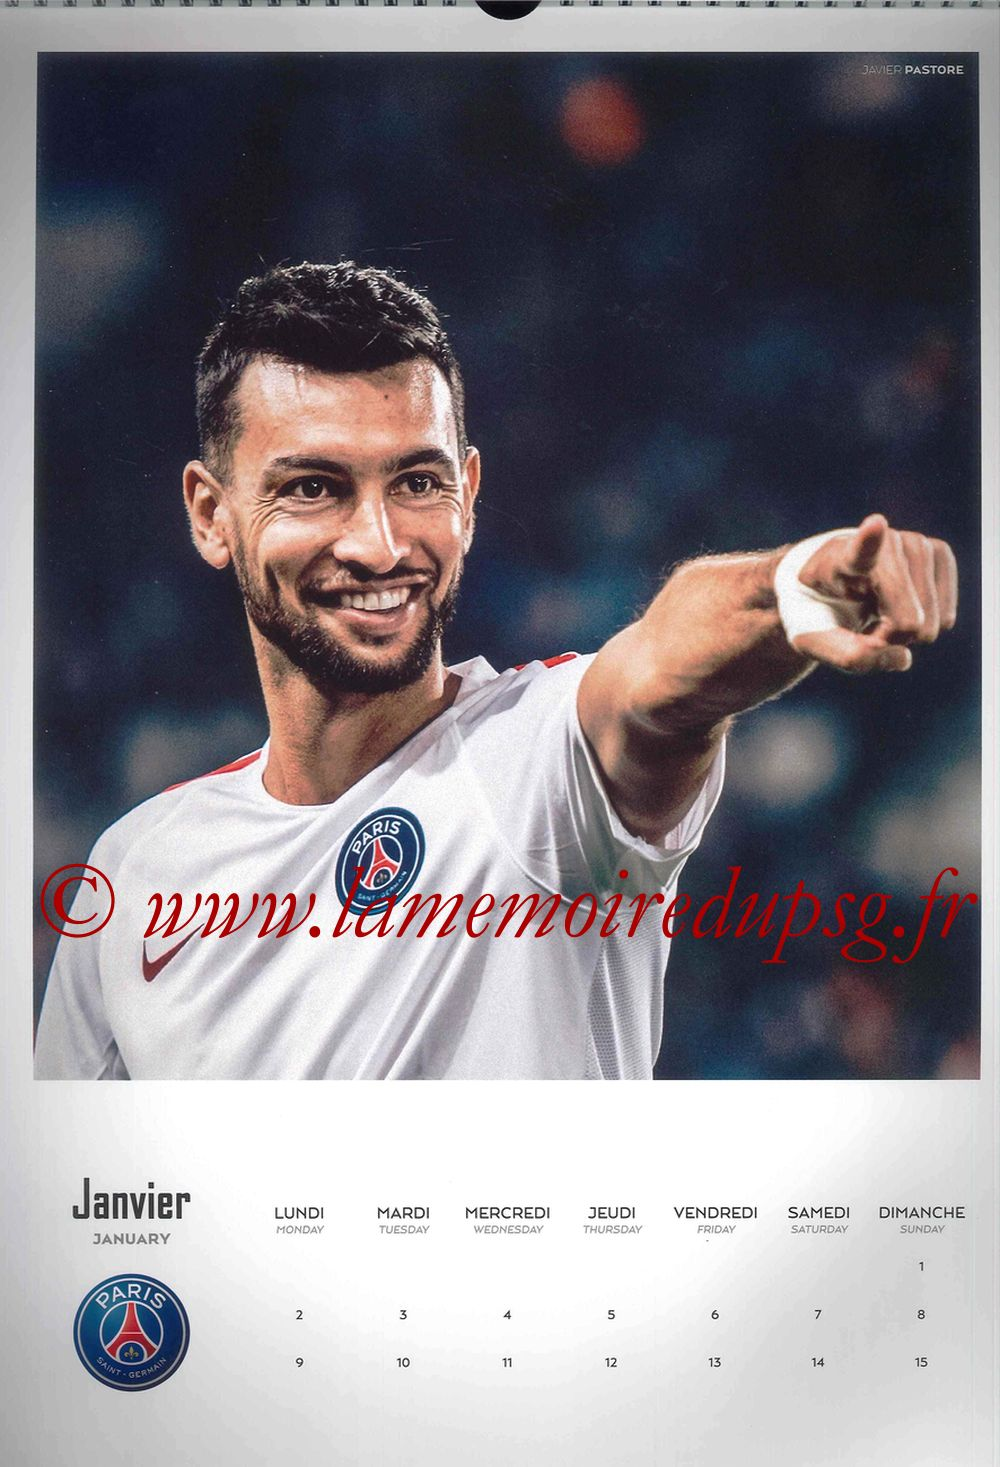 Calendrier PSG 2017 - Page 01 - Javier PASTORE